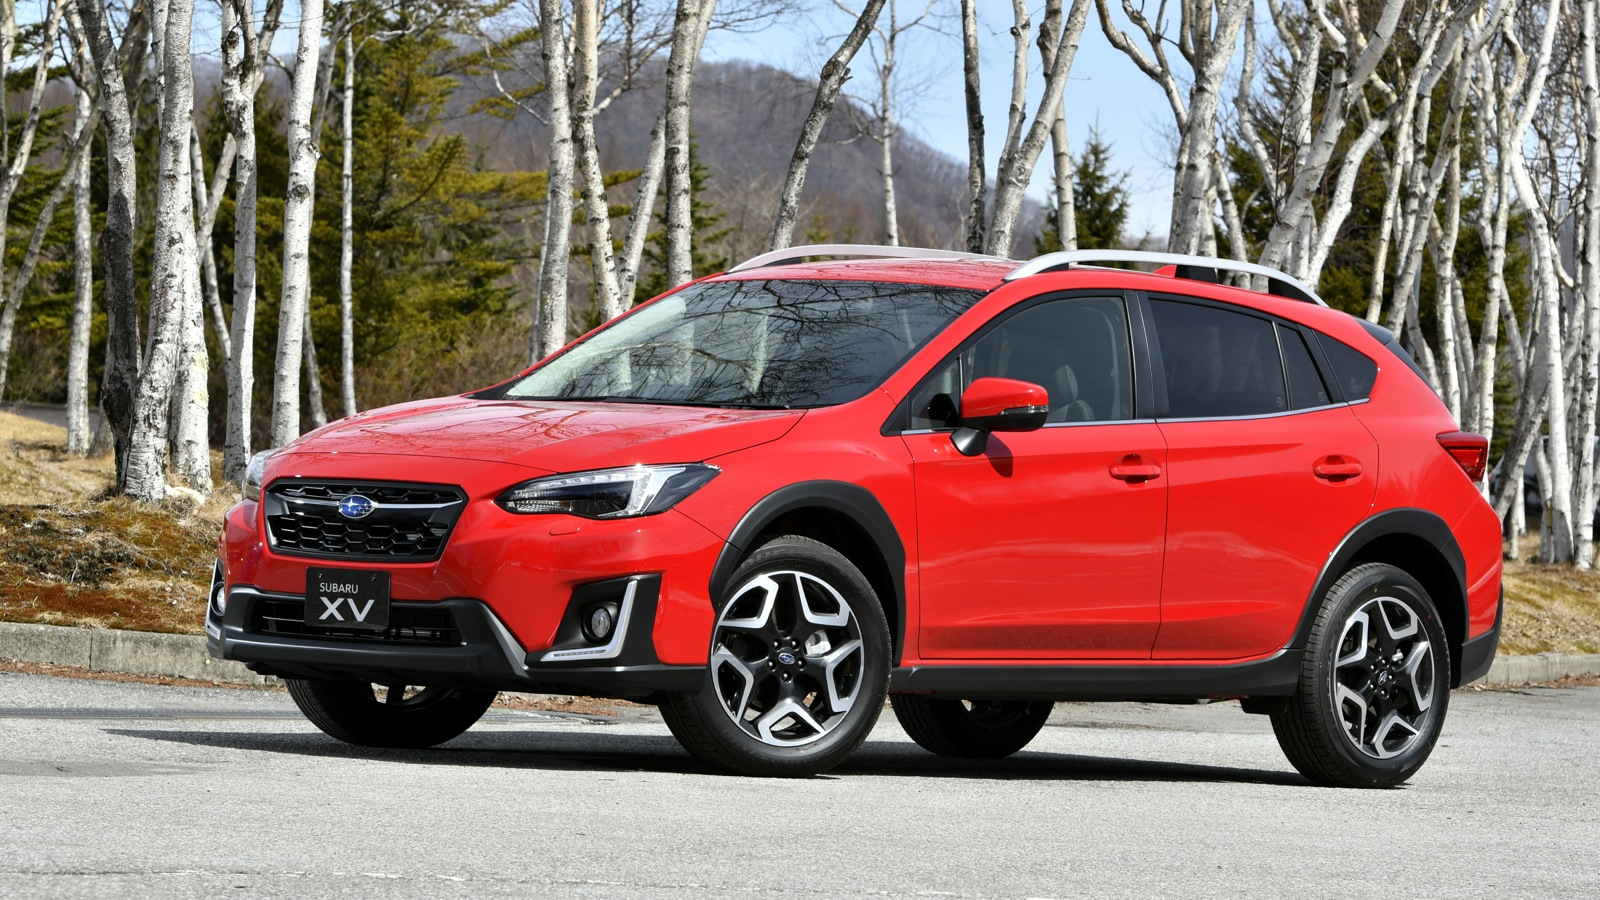 Subaru Wrx Specs >> 2017 Subaru XV review - photos | CarAdvice